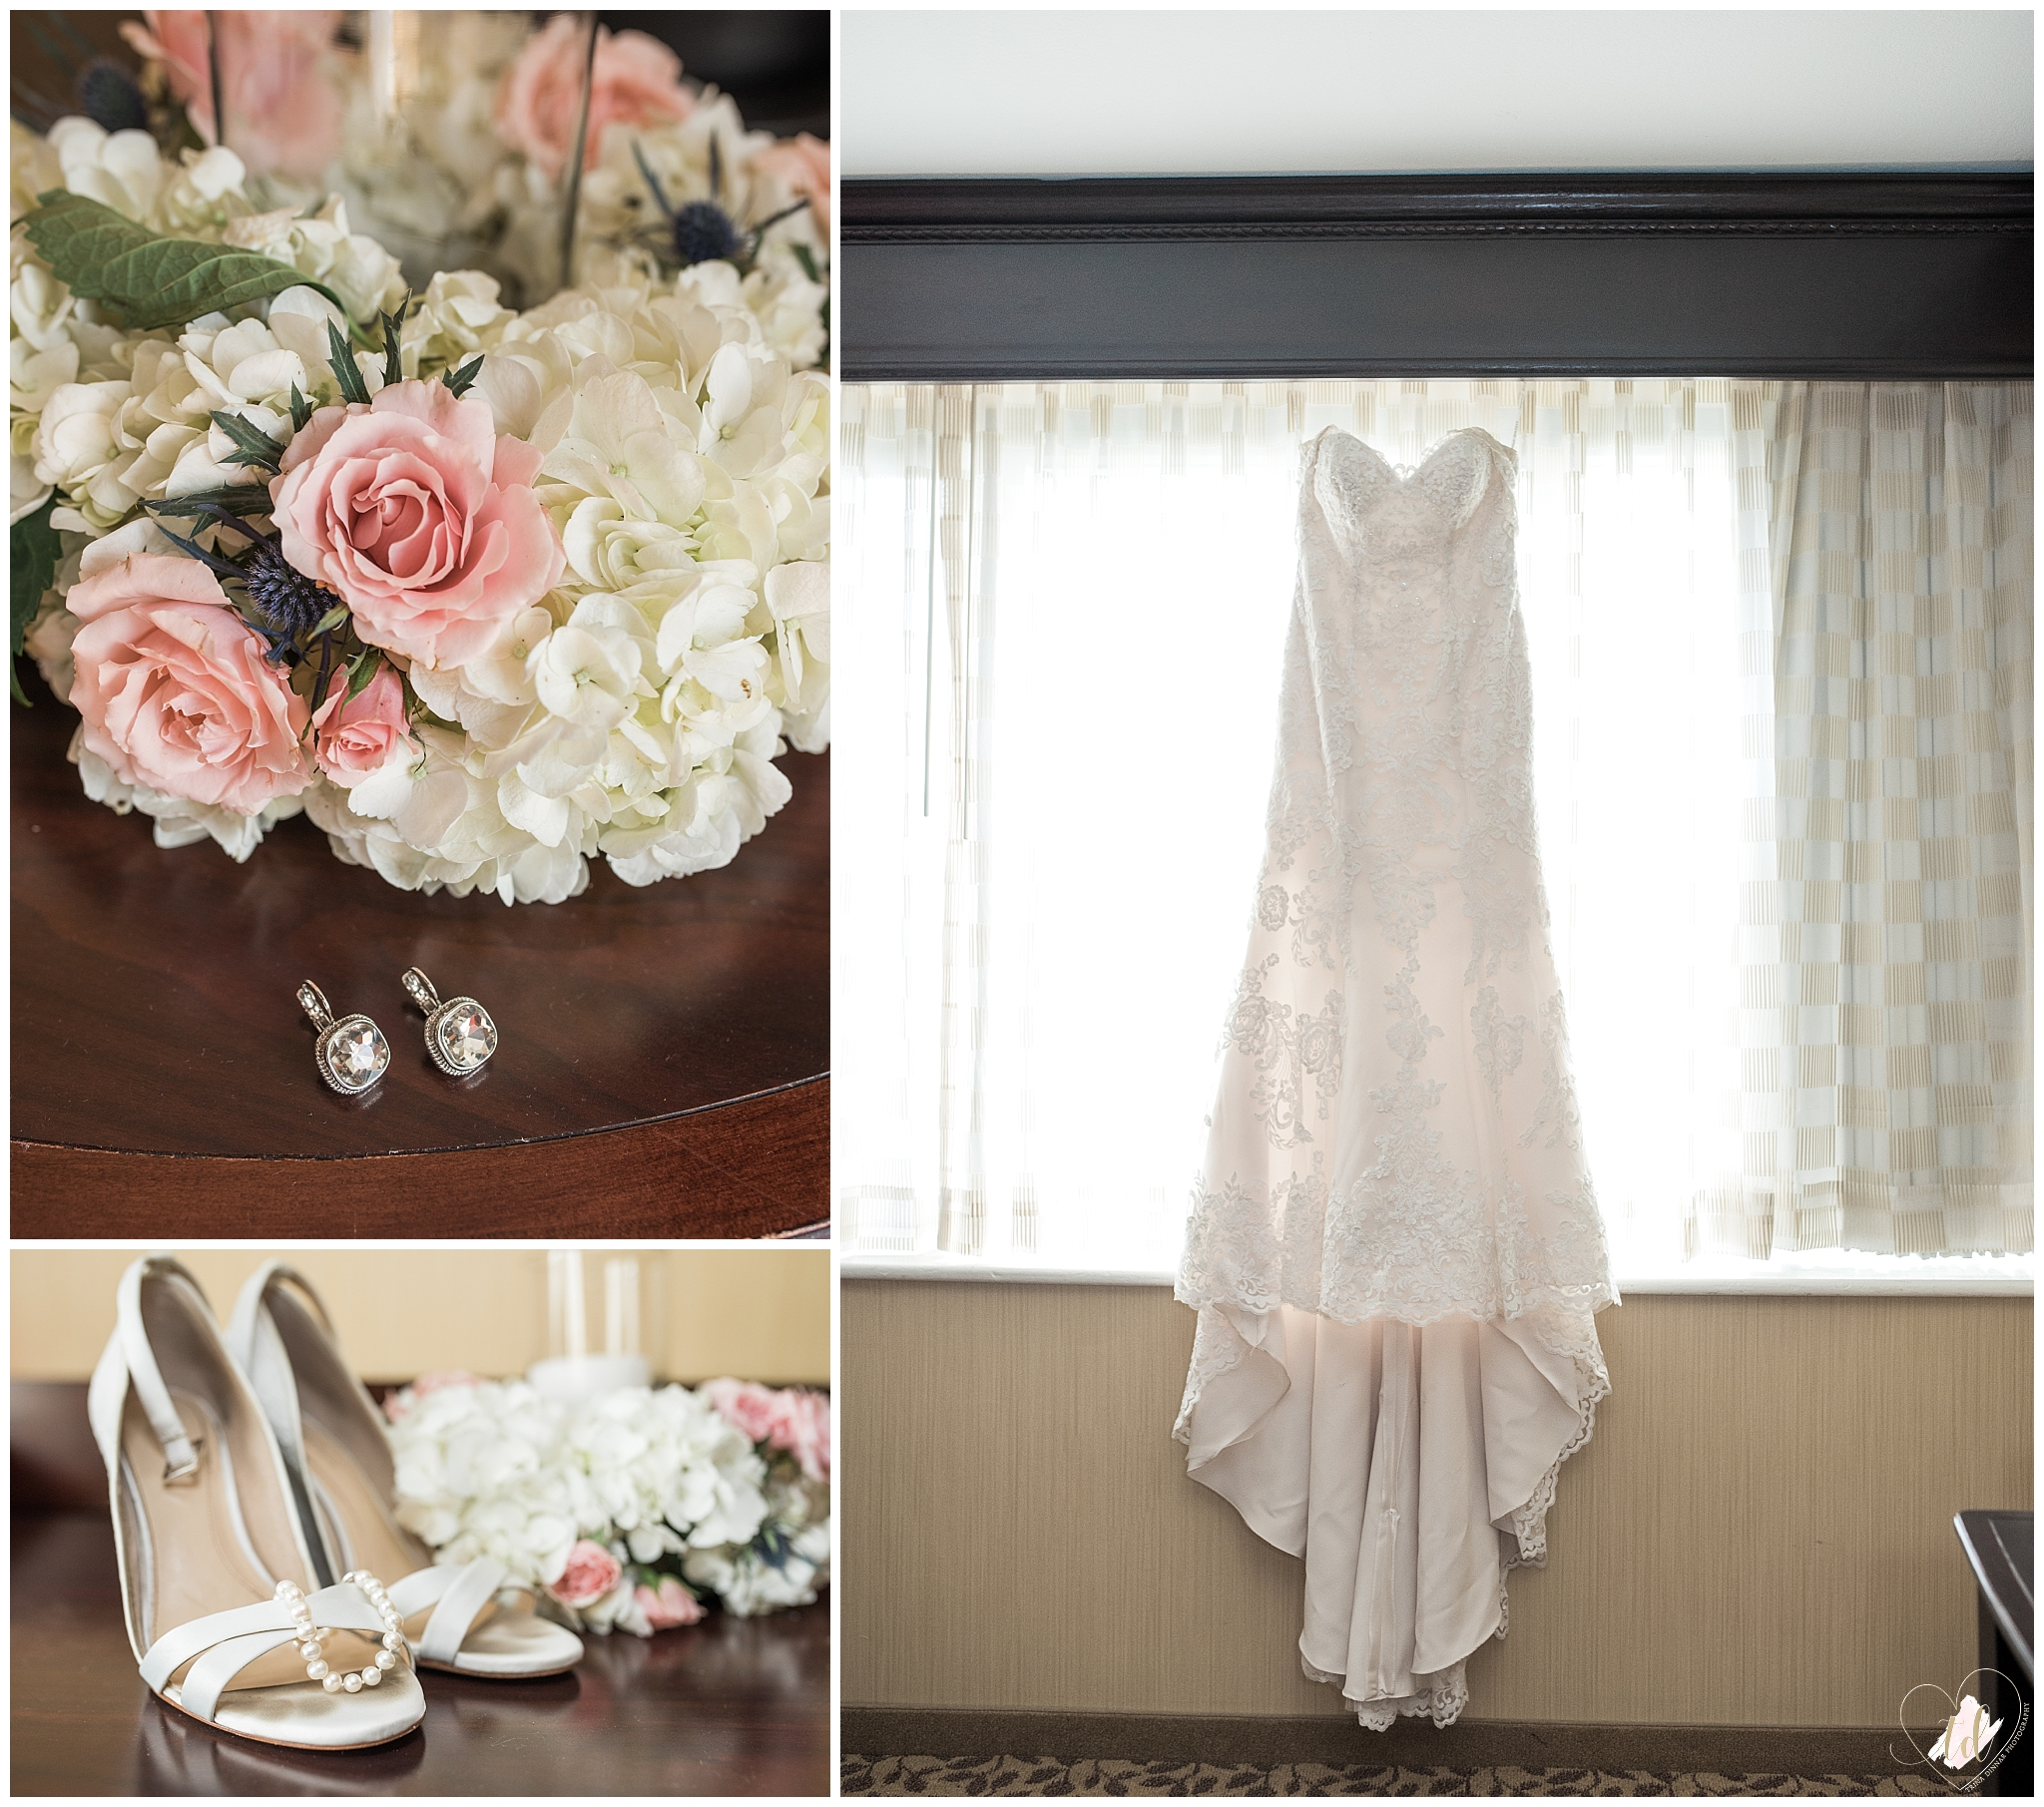 Bride's wedding dress and accessories at the Marriott.